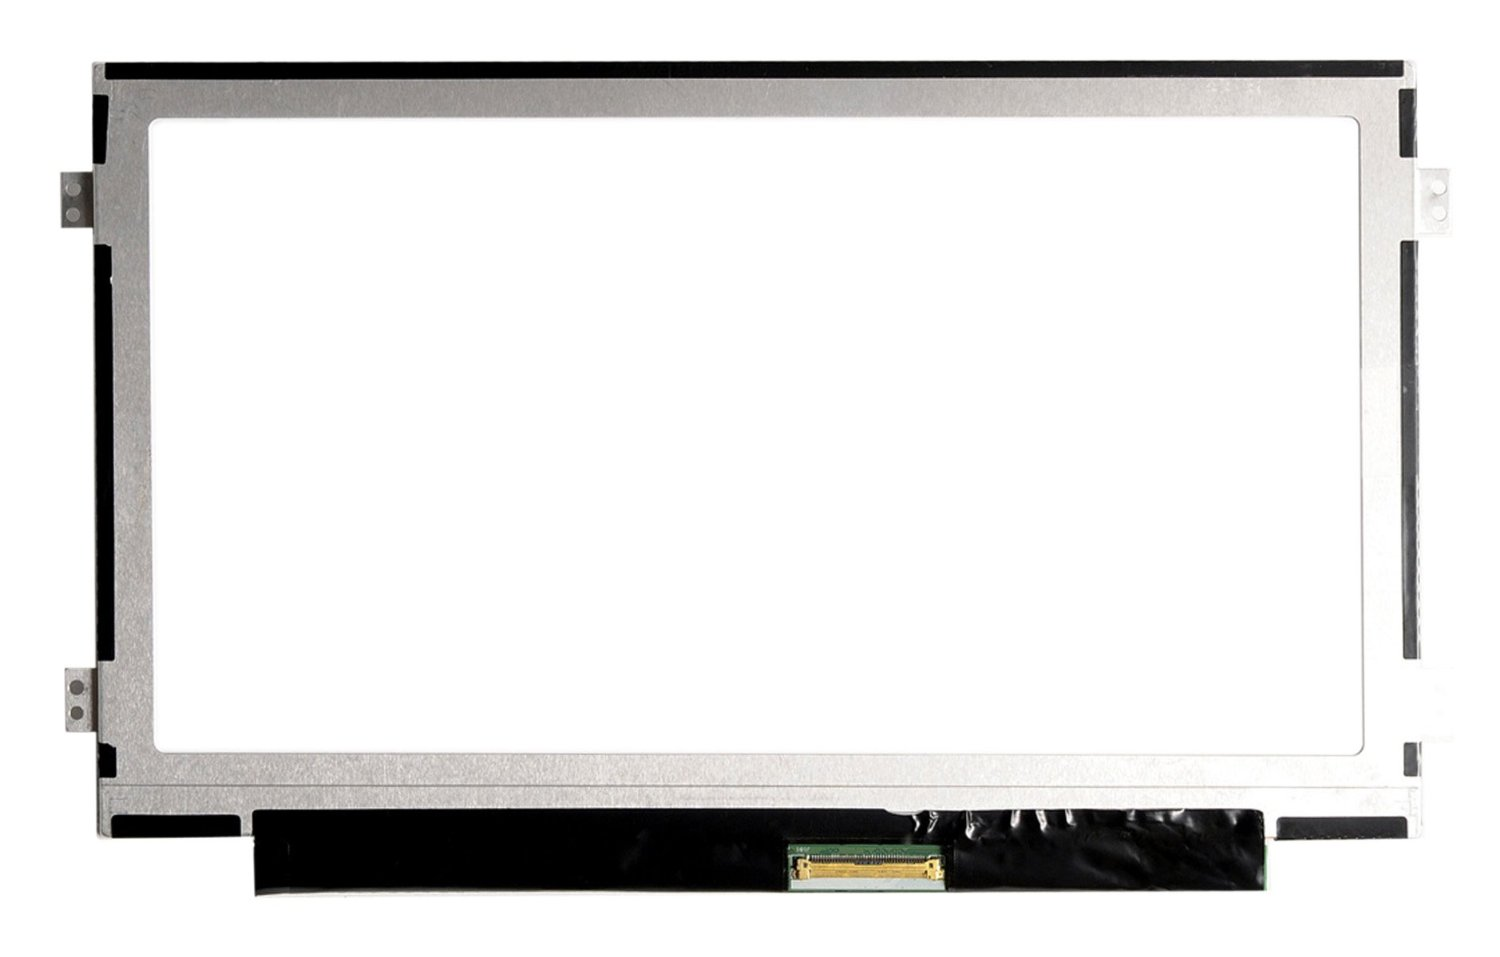 New Netbook for Lenovo S100 S110 S105 S10-3 M13 B101AW06 10.1'' LCD Screen (connector : 40 pin)